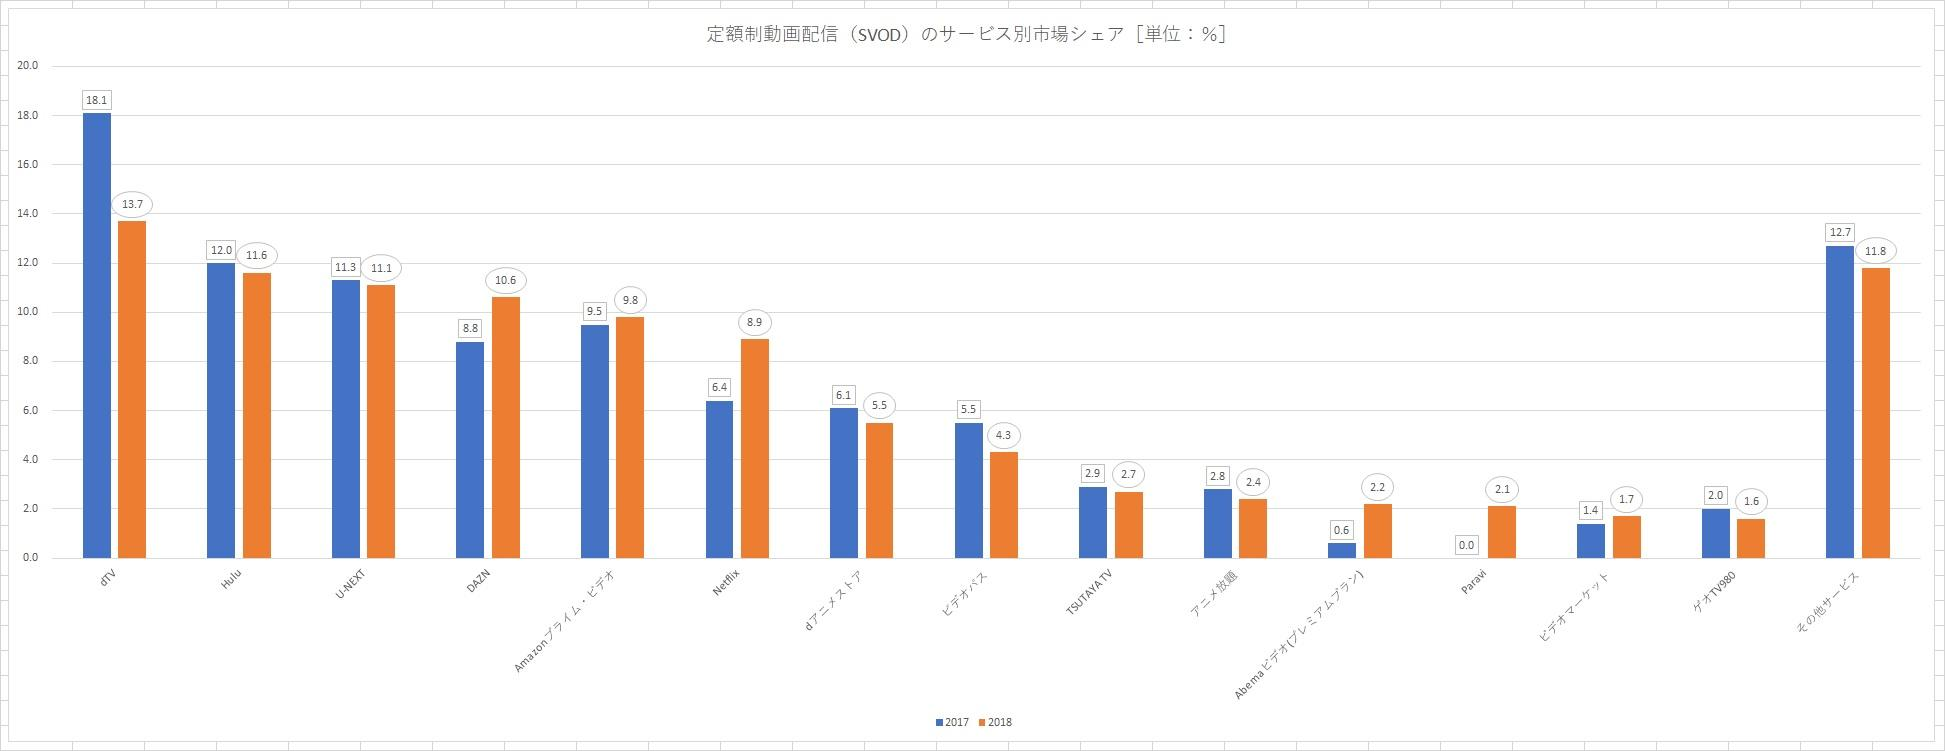 http://tablo.jp/culture/img/graph_03.jpg